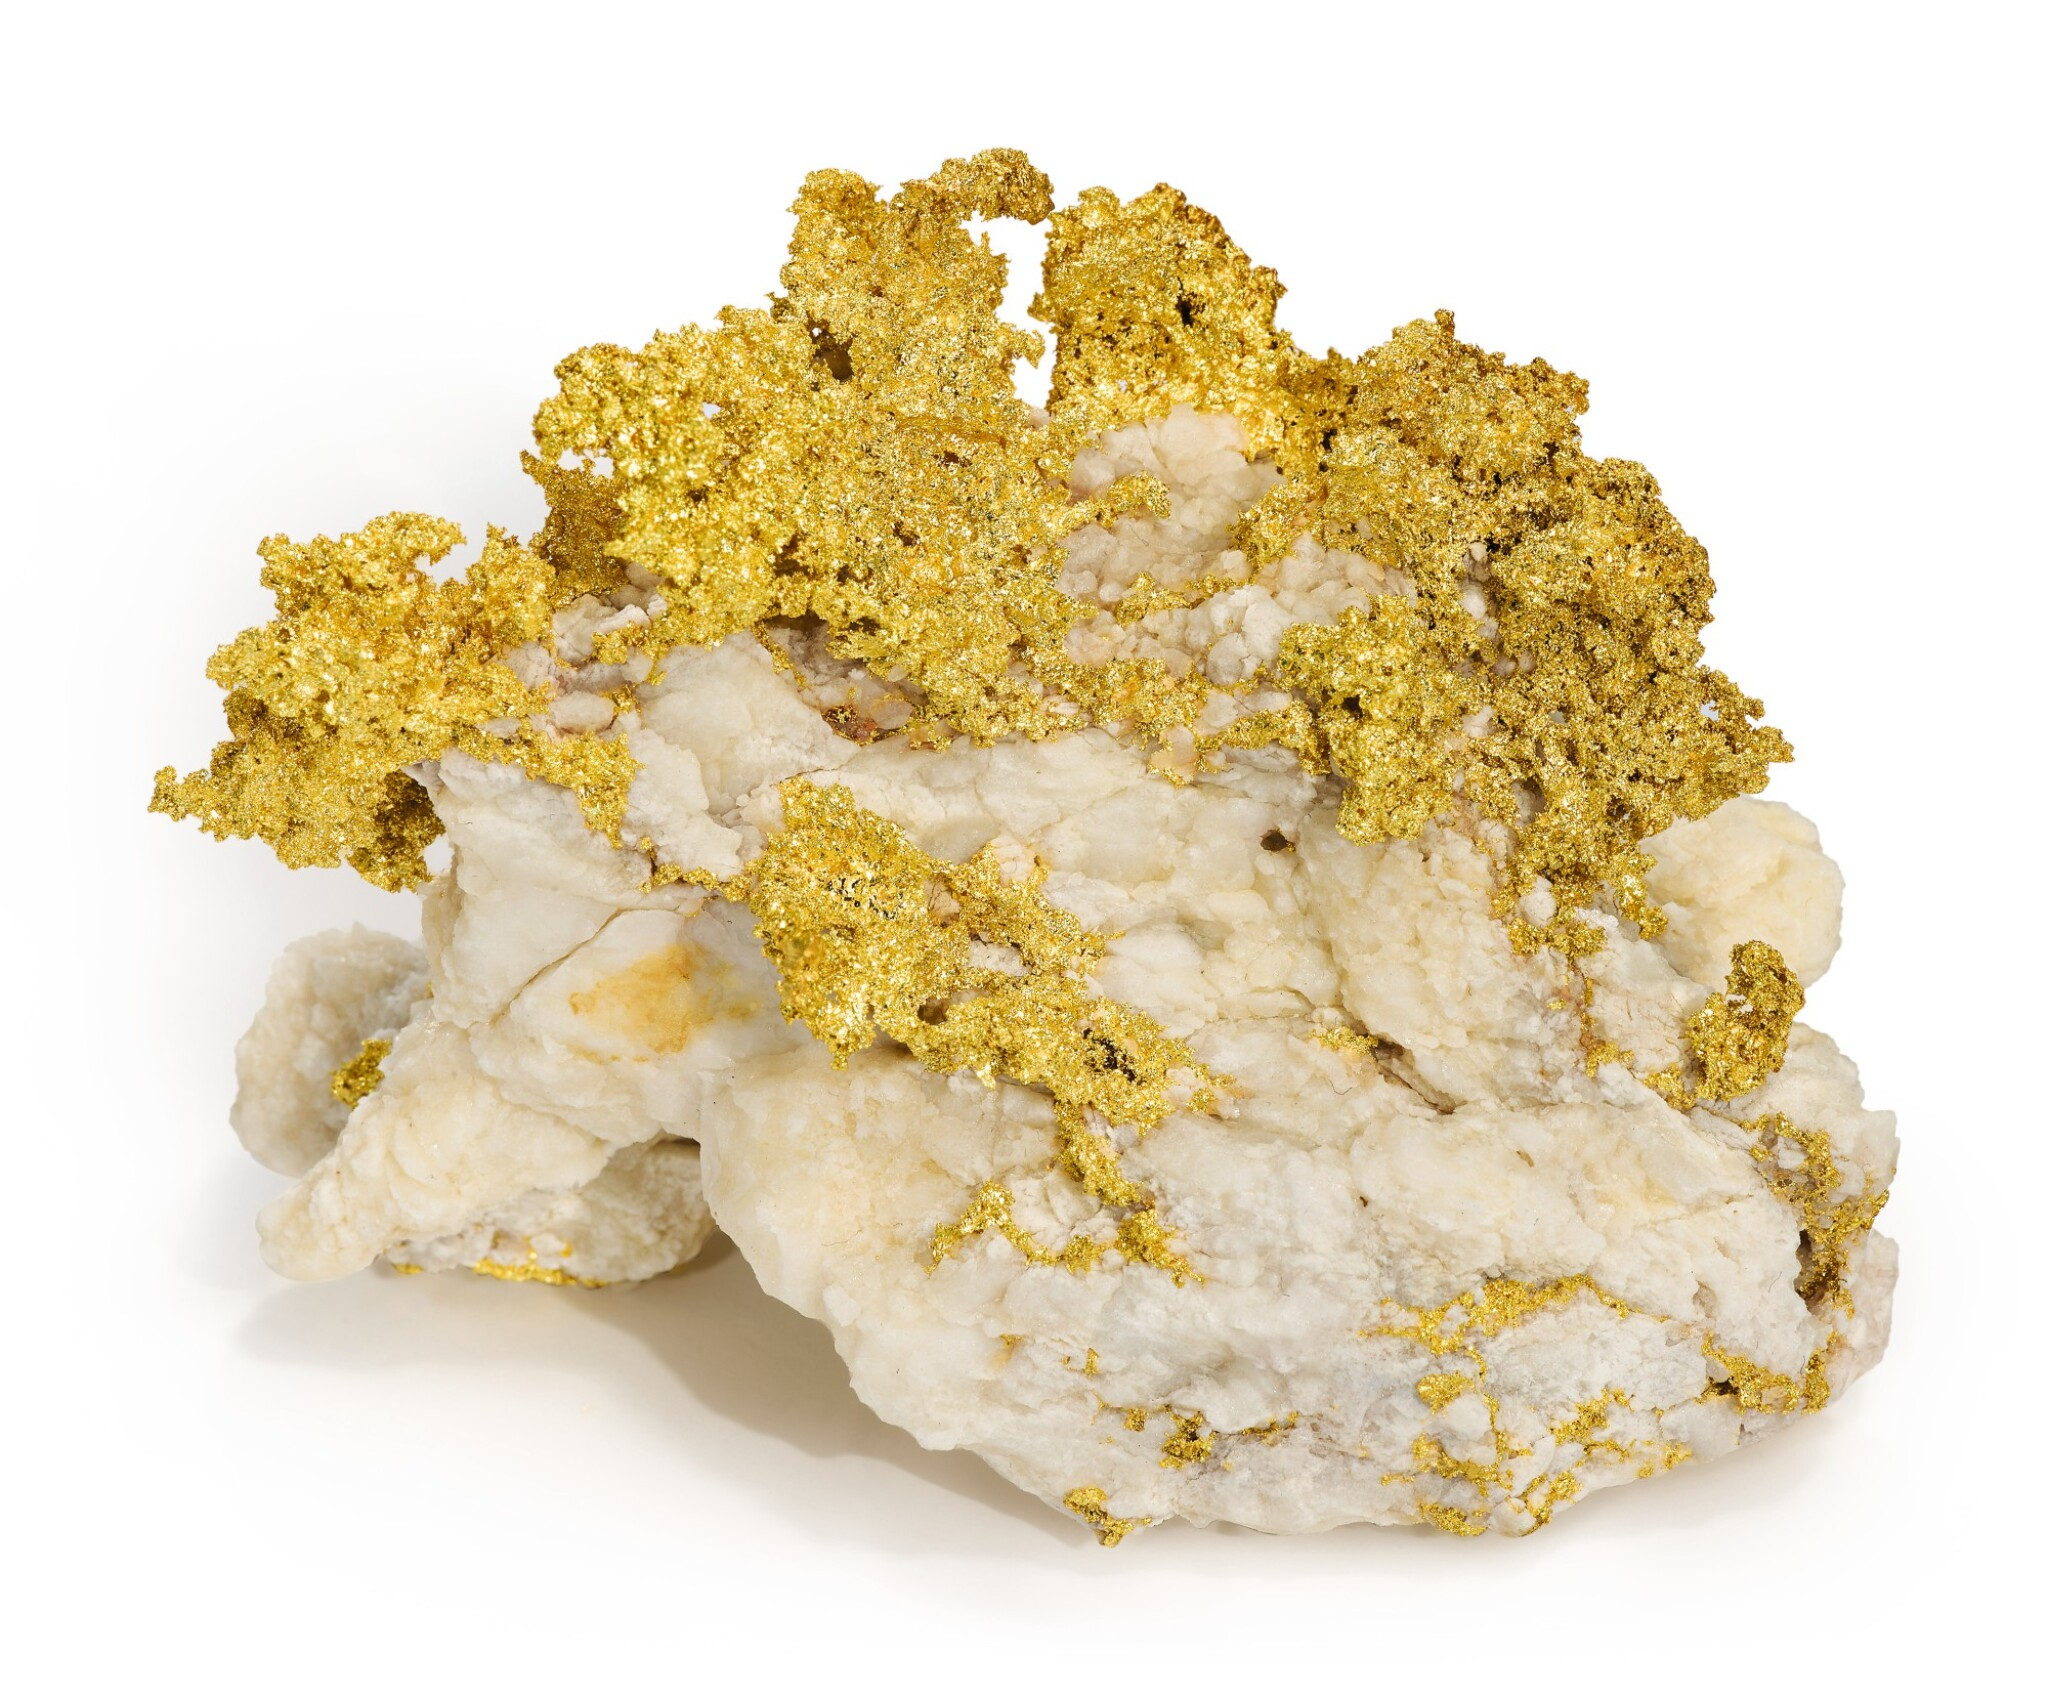 CLASSIC GOLD IN QUARTZ SPECIMEN